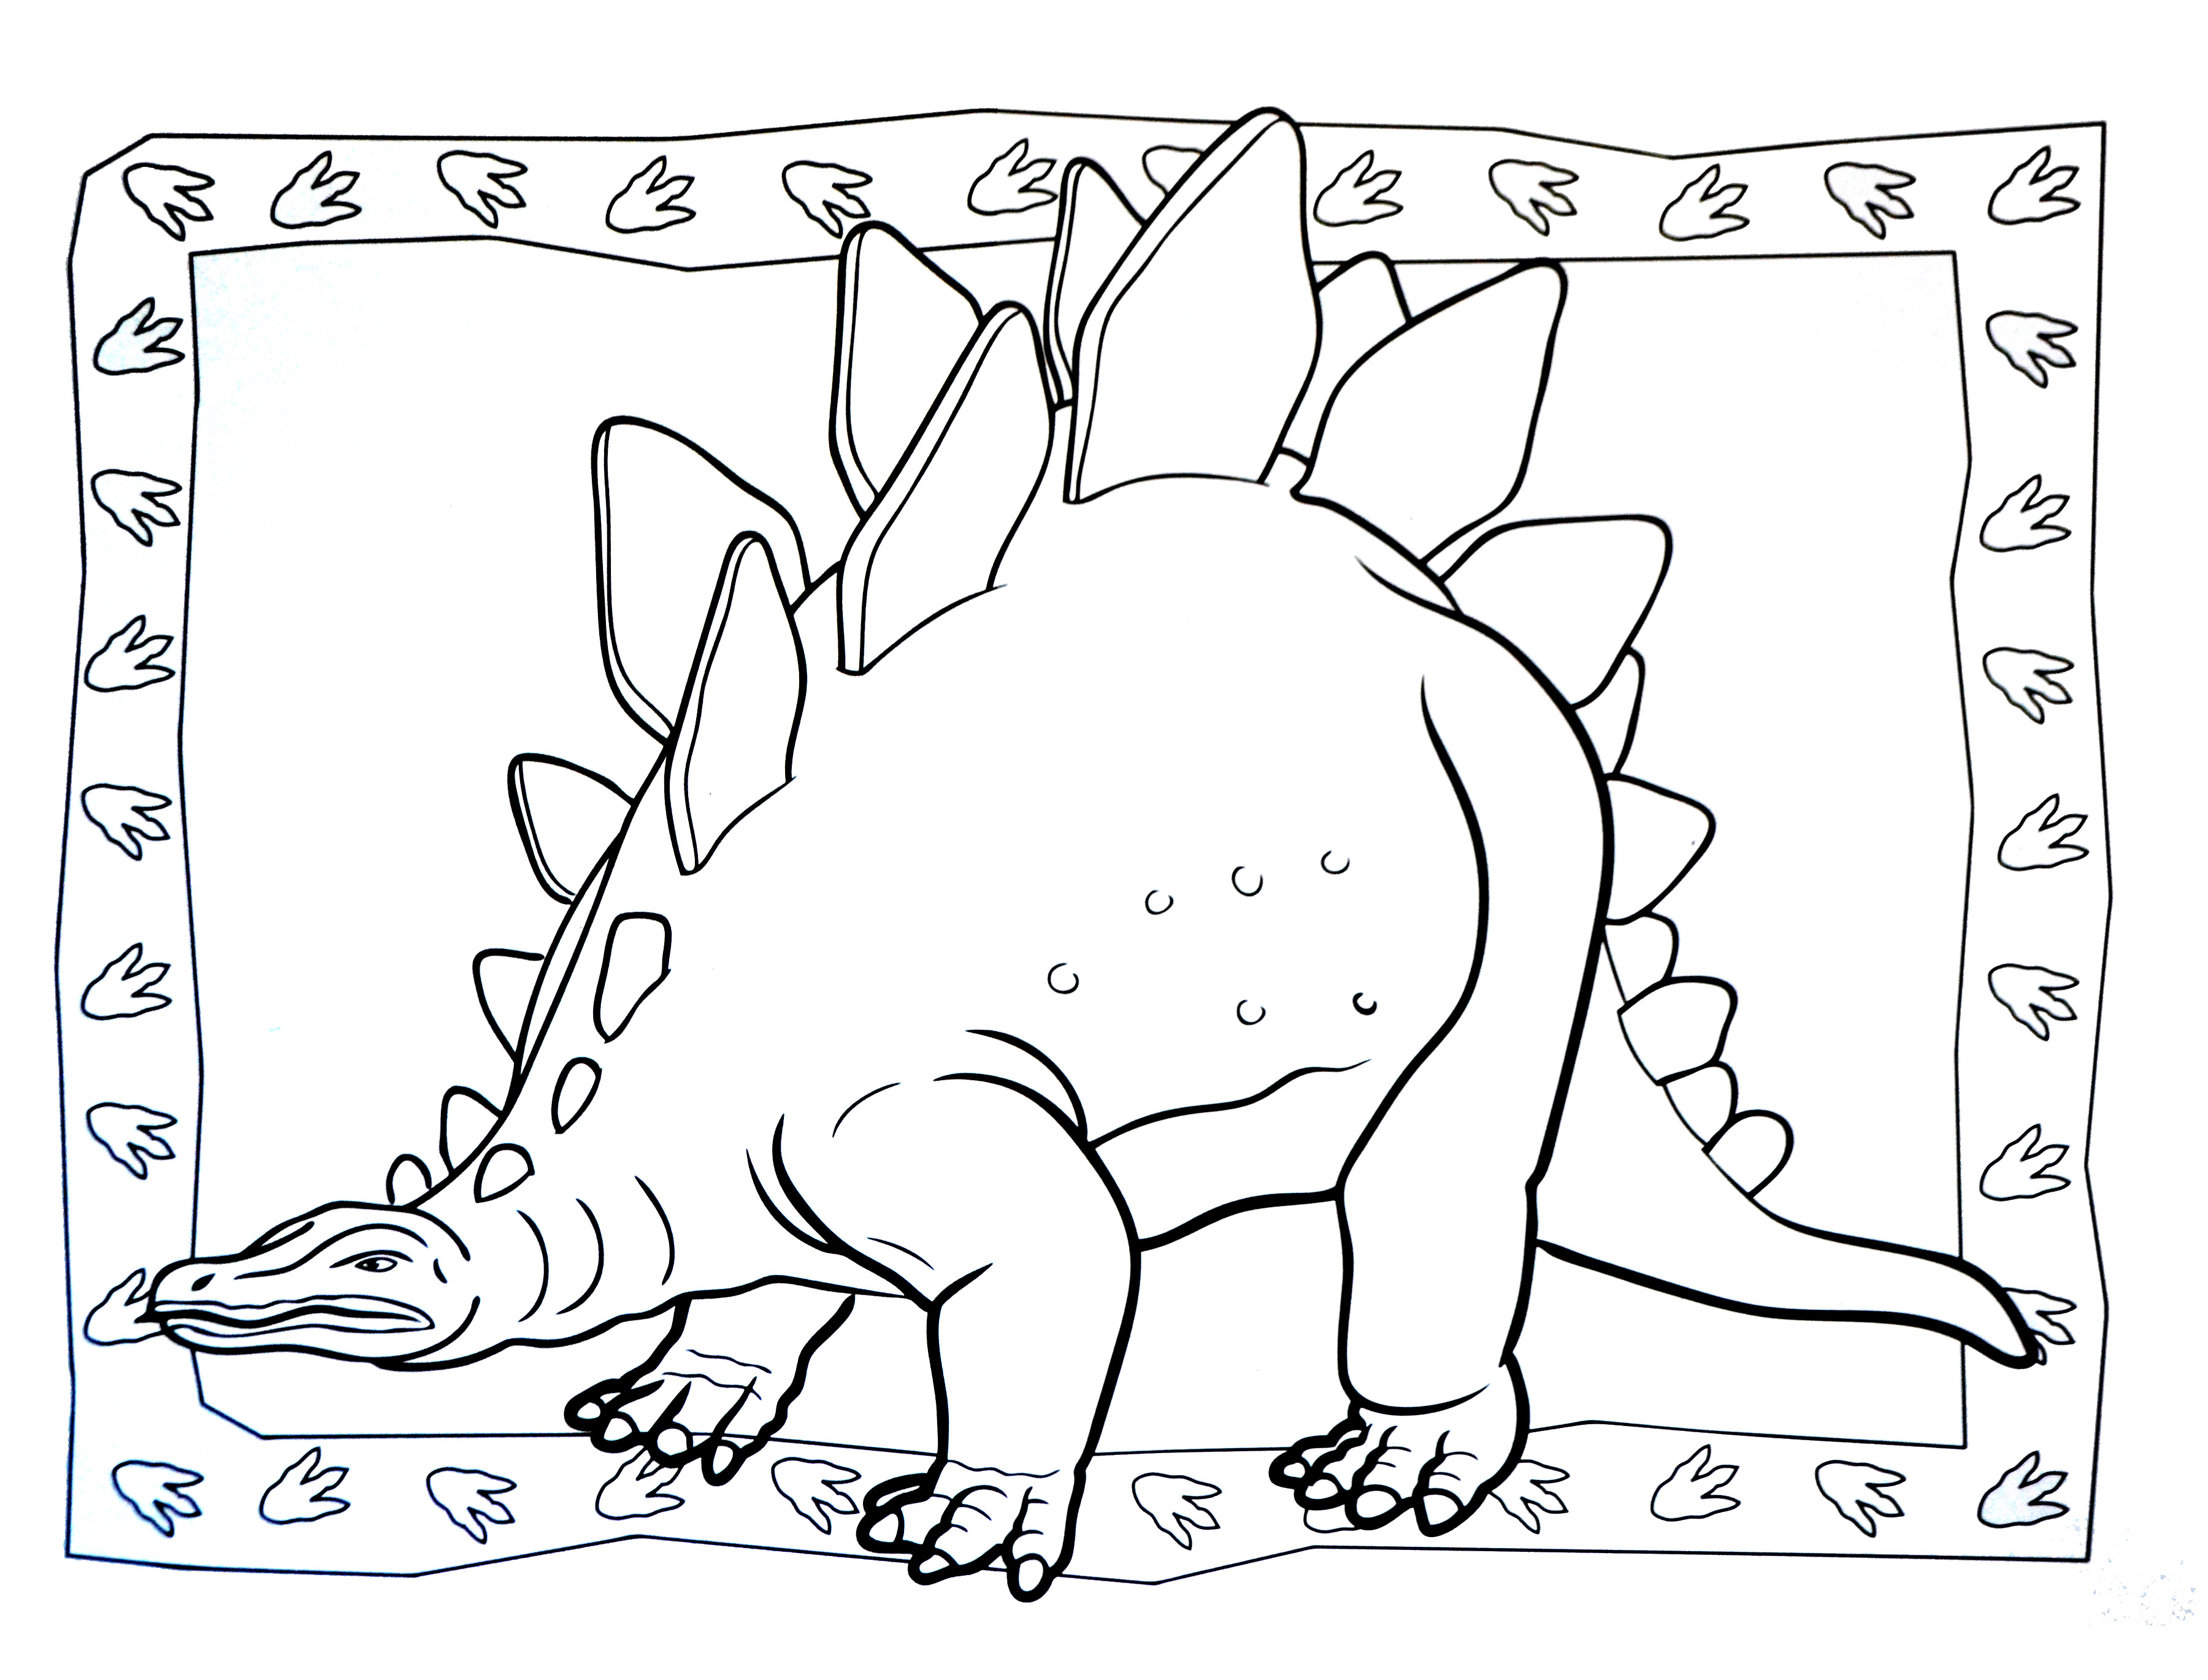 Simple Dinosaurs coloring page for kids : Stegosaurian